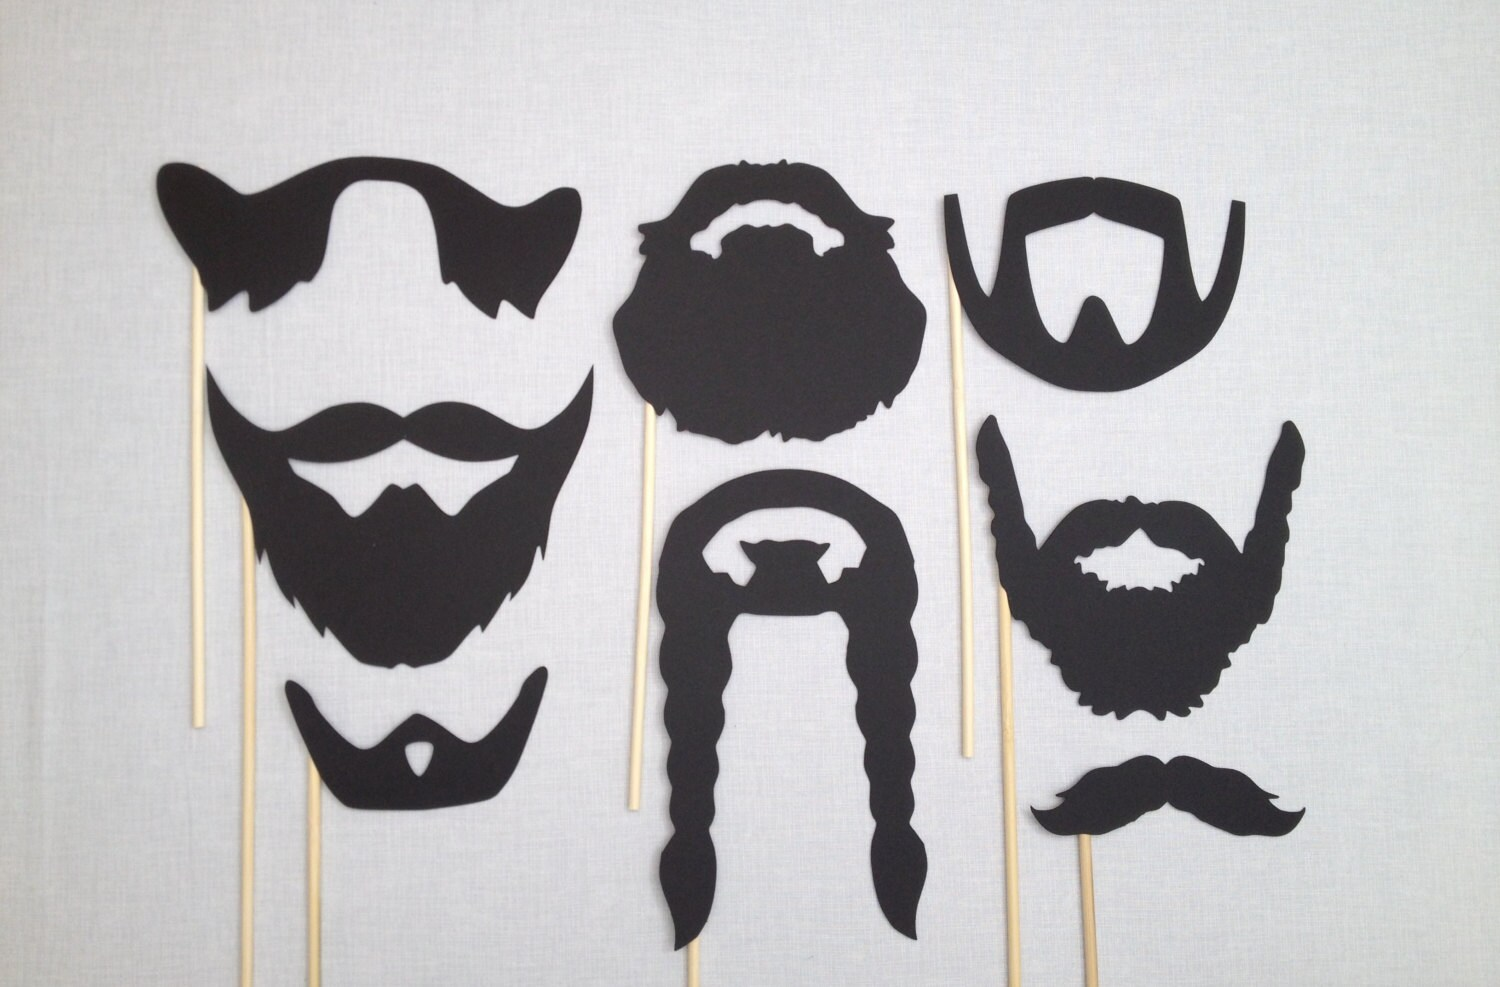 8 Beard Photo Booth Props Movember Wedding Photo Booth Etsy